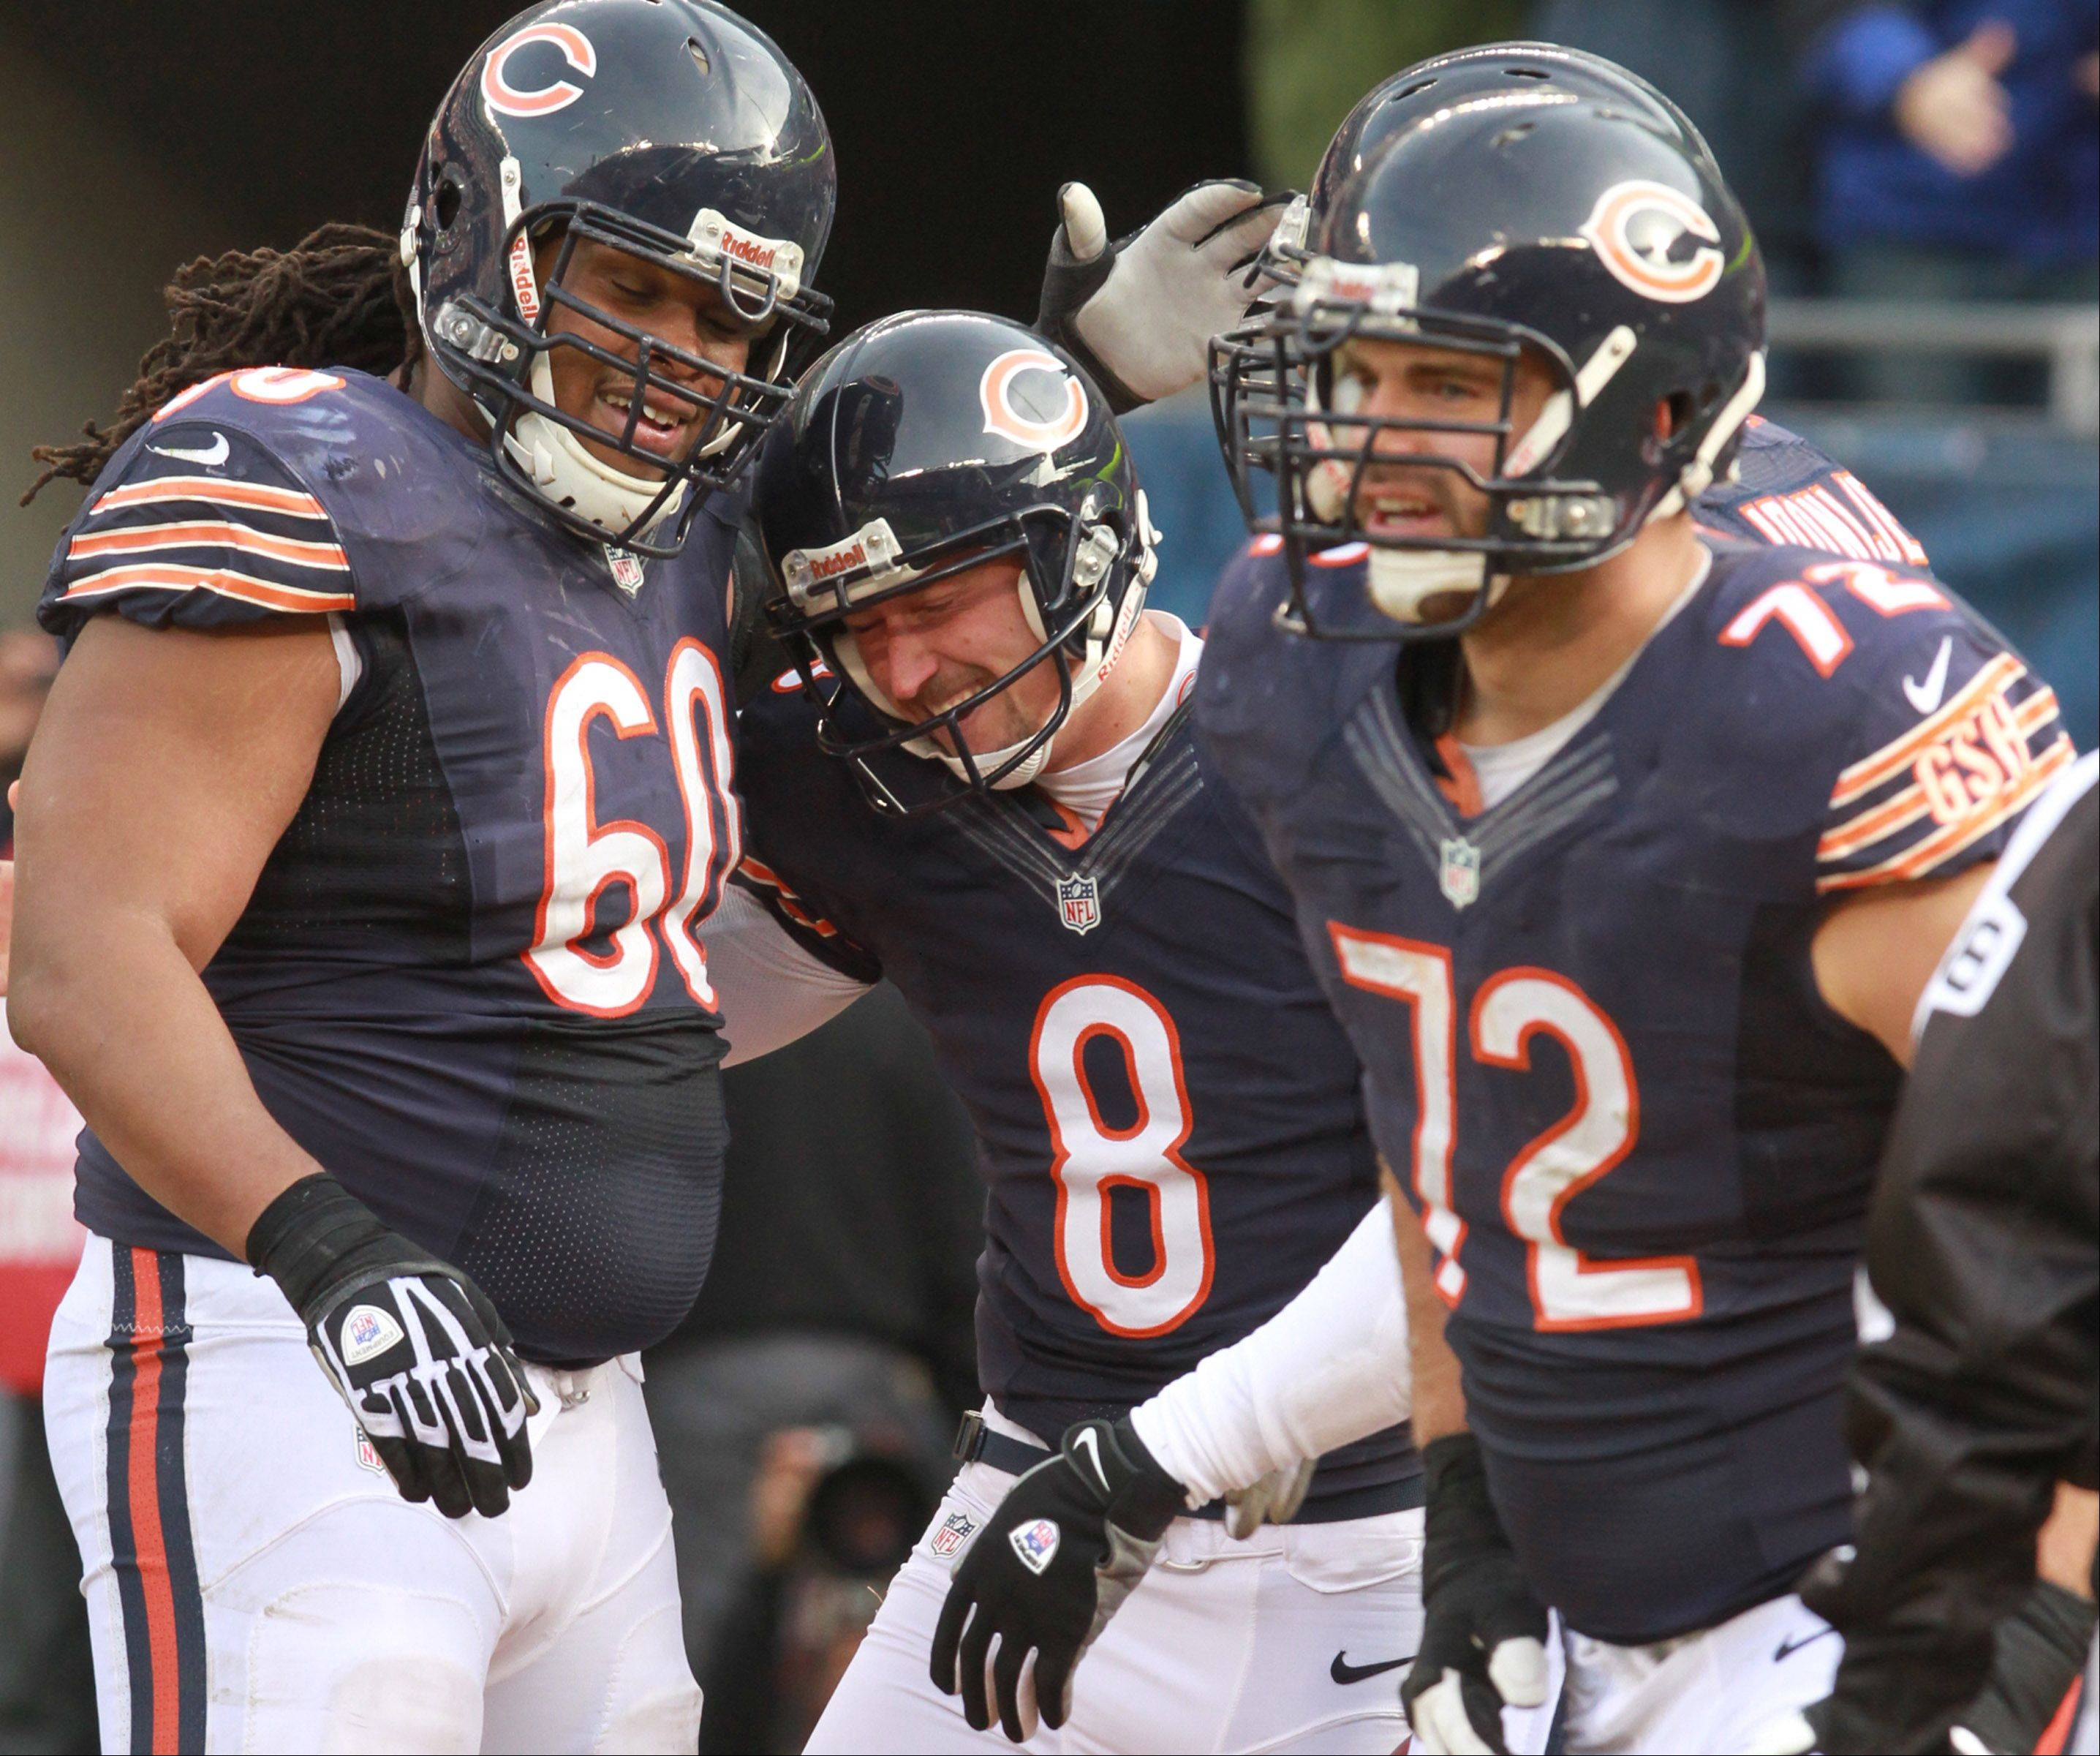 Chicago Bears linemen Lance Louis, left, and Gabe Carimi, right, celebrate a 2-point conversion by extra-point holder Adam Podlesh at Soldier Field Sunday. Louis suffered a knee injury in the second half that will keep him out the rest of the season.